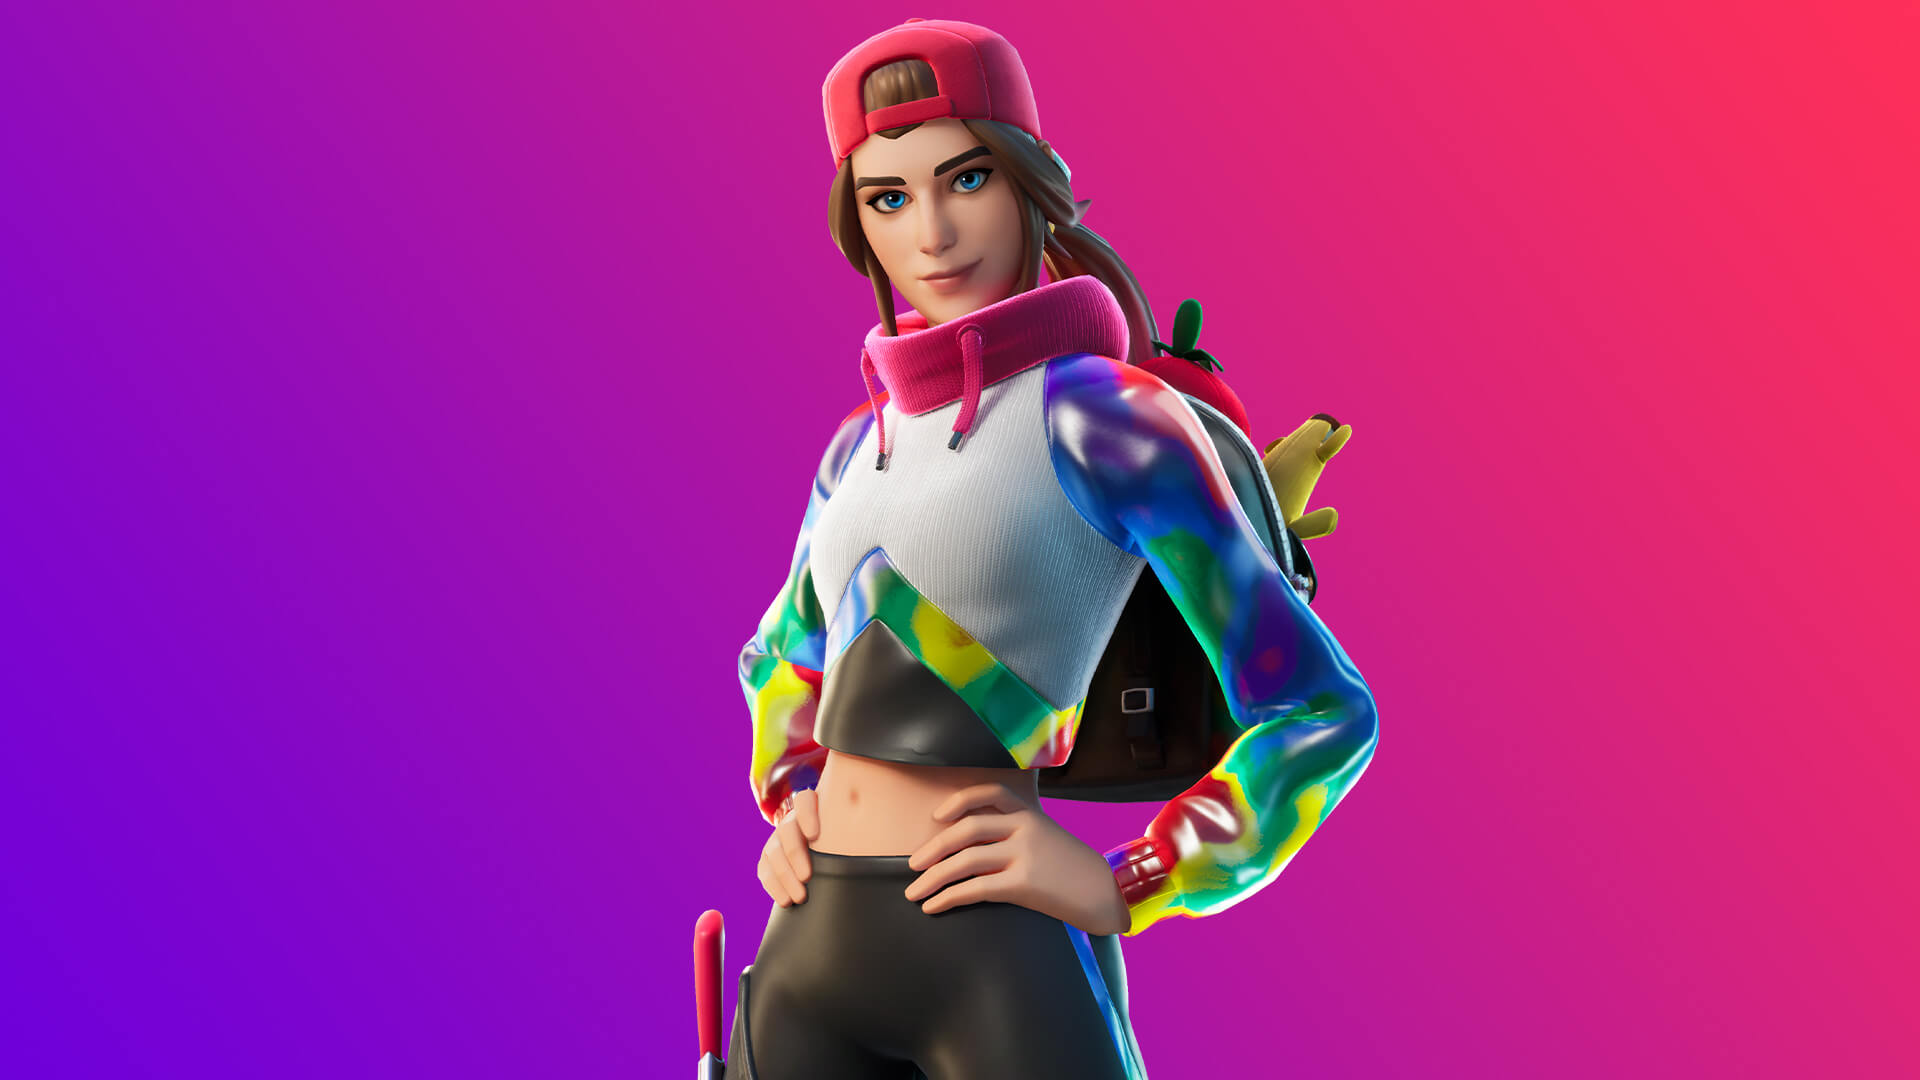 Loserfruit Joins The Fortnite Icon Series